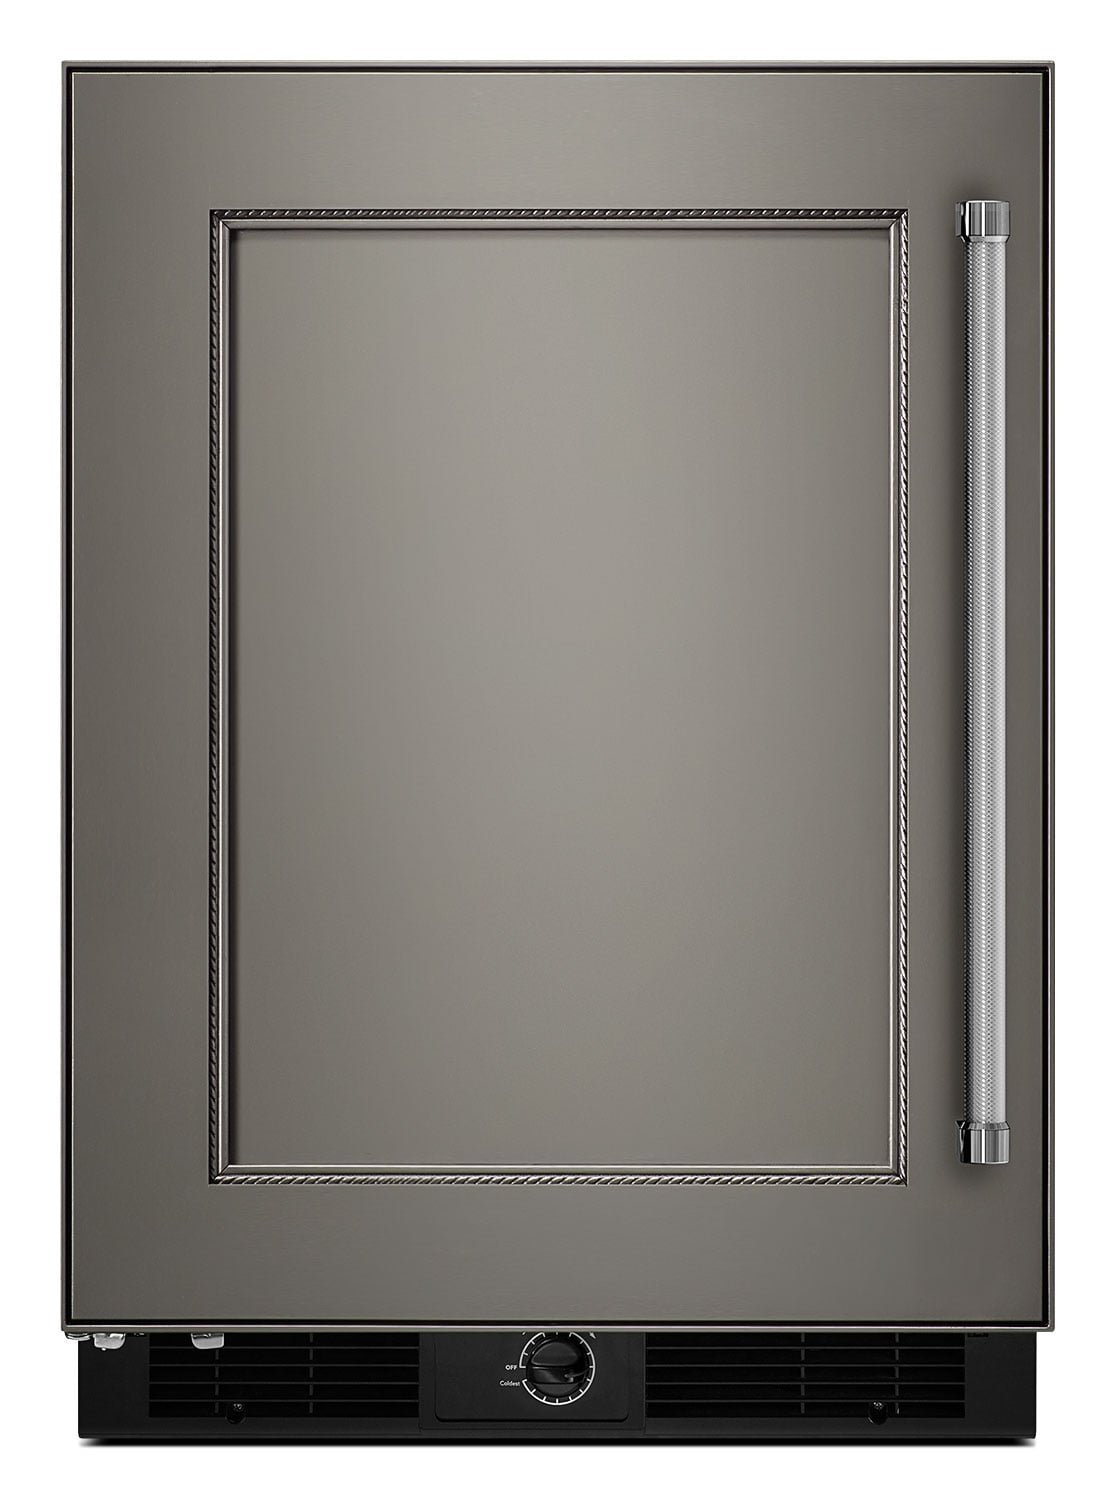 KitchenAid 4.9 Cu. Ft. Undercounter Refrigerator with Left Door Swing - Panel Ready